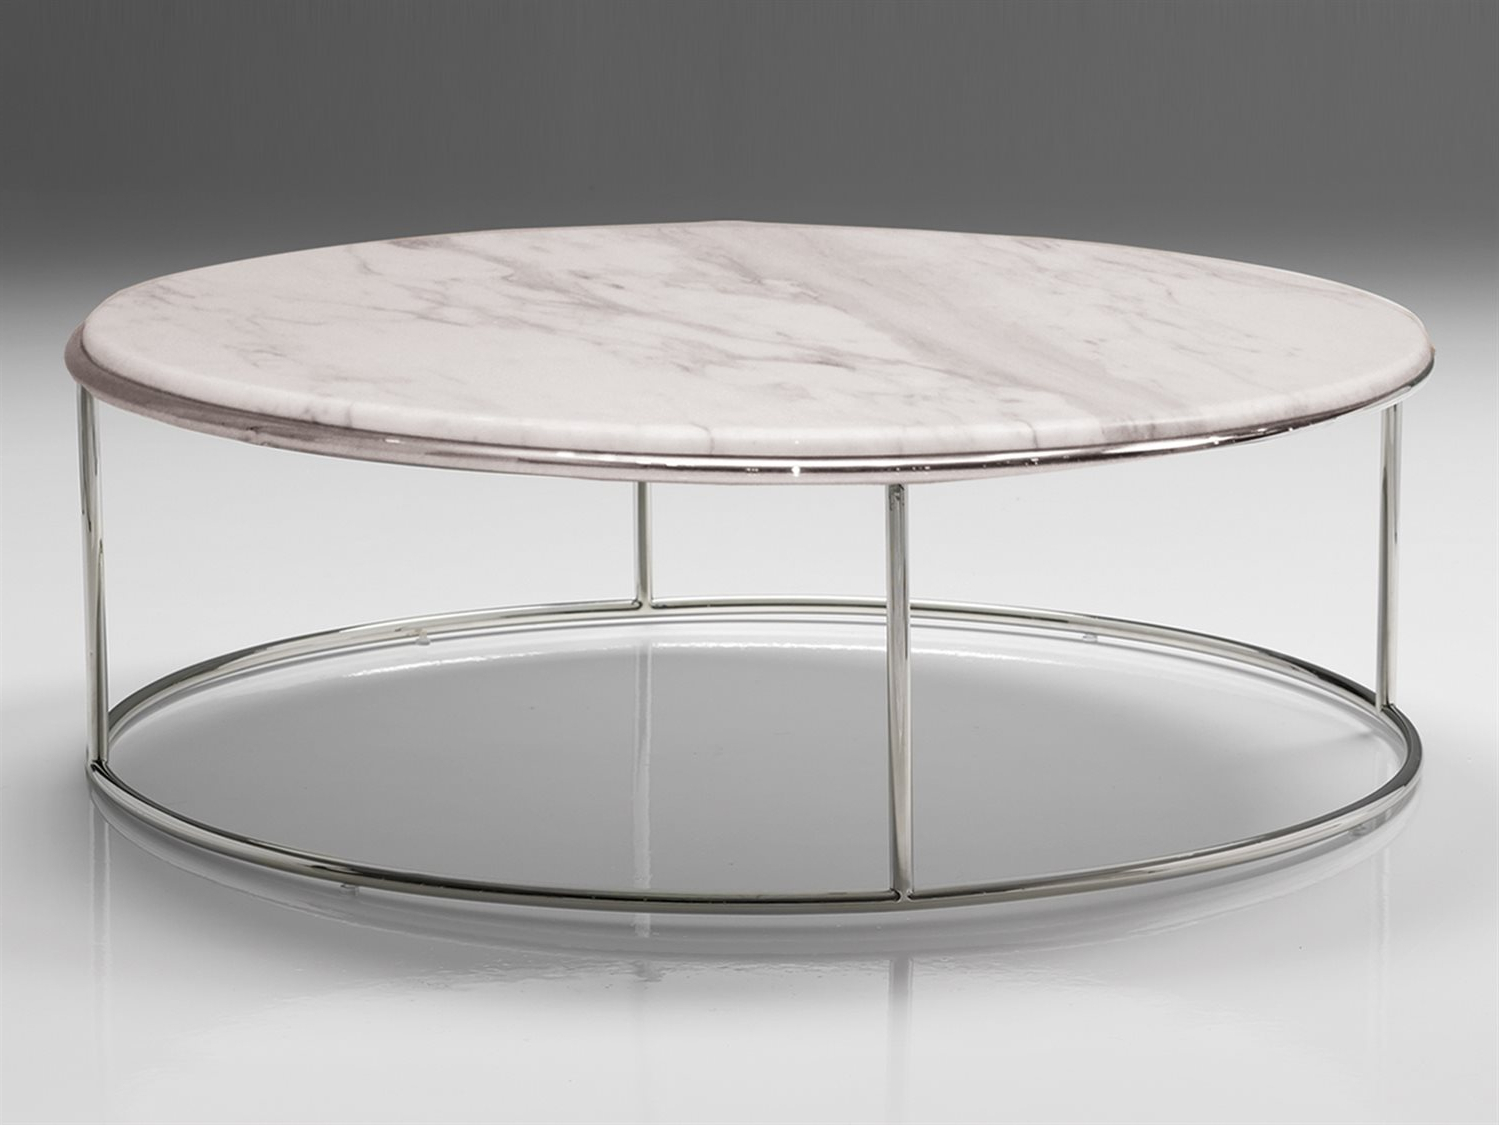 Popular Smart Large Round Marble Top Coffee Tables For Decoration In Marble Round Coffee Table With Coffee Table Smart (View 4 of 20)